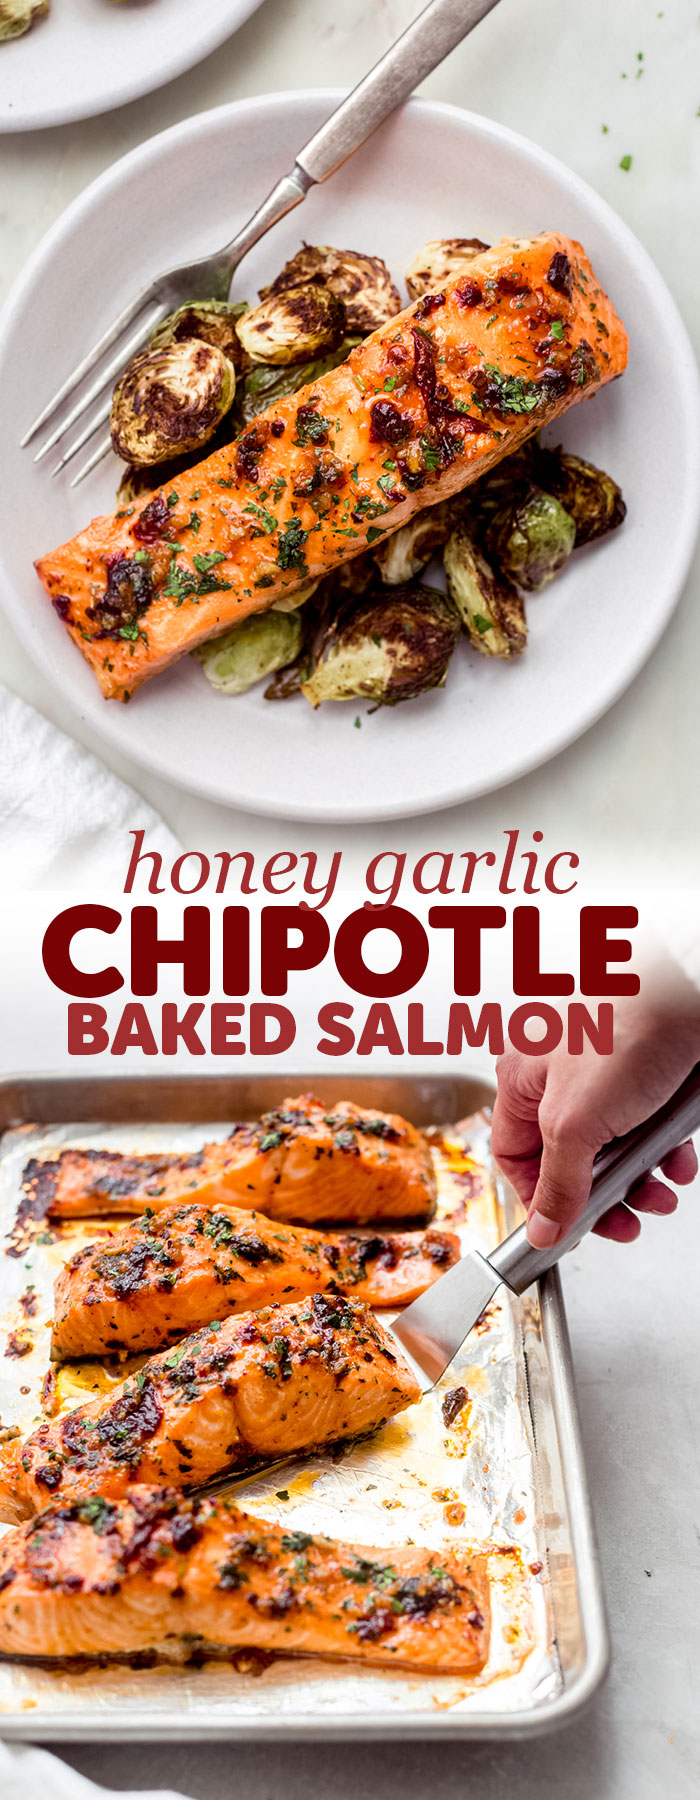 Garlic Honey Chipotle Salmon - a simple salmon recipe that takes just 5 minutes of prep work! Bake the salmon and serve with just about any side! #lowcarbrecipes #salmonrecipes #mealpreprecipes #mealprep #salmon #bakedsalmon #bakedsalmoninfoil | Littlespicejar.com